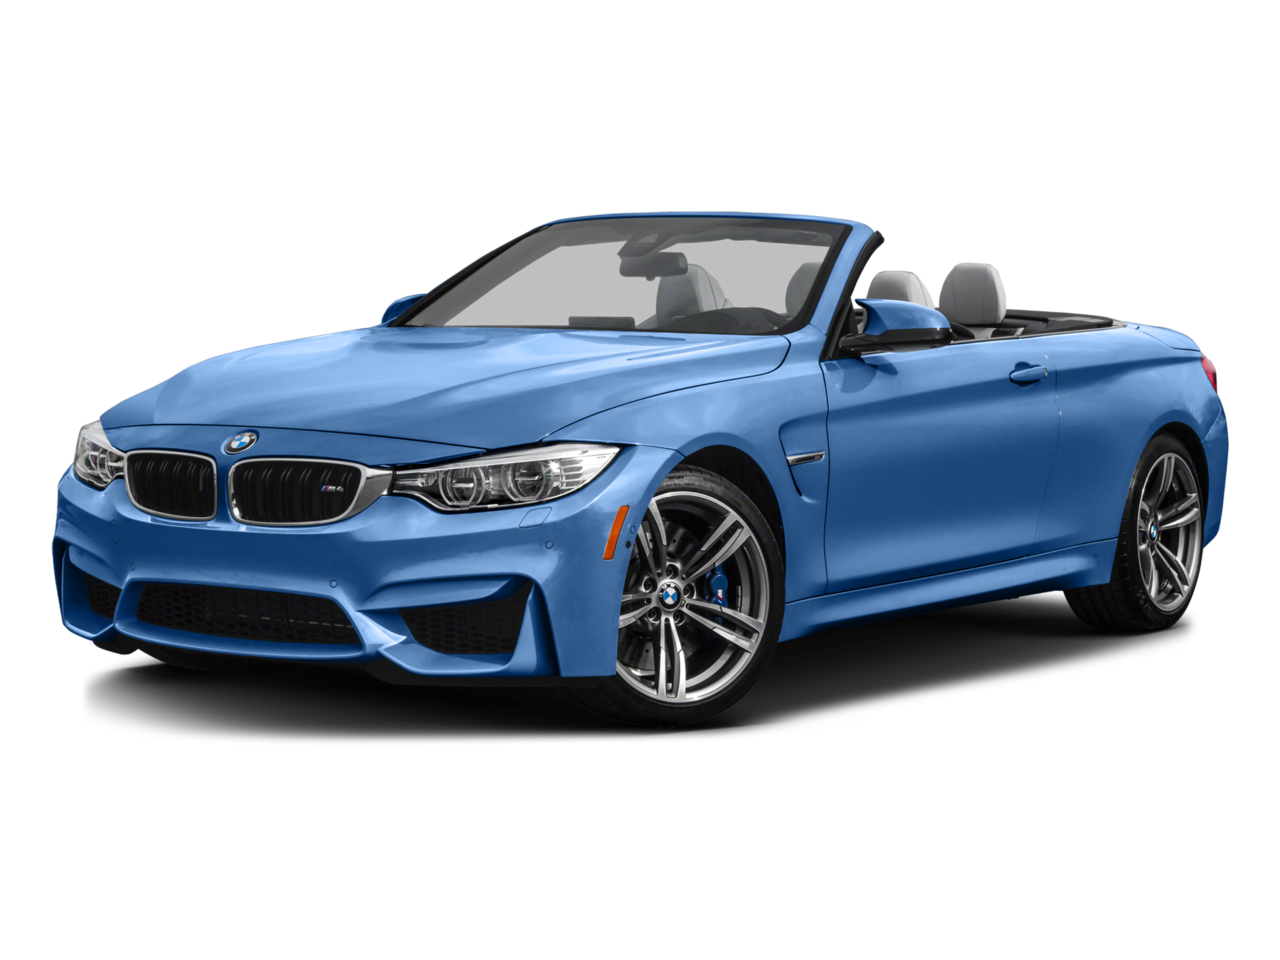 2016 BMW M4 Convertible Chicago, IL